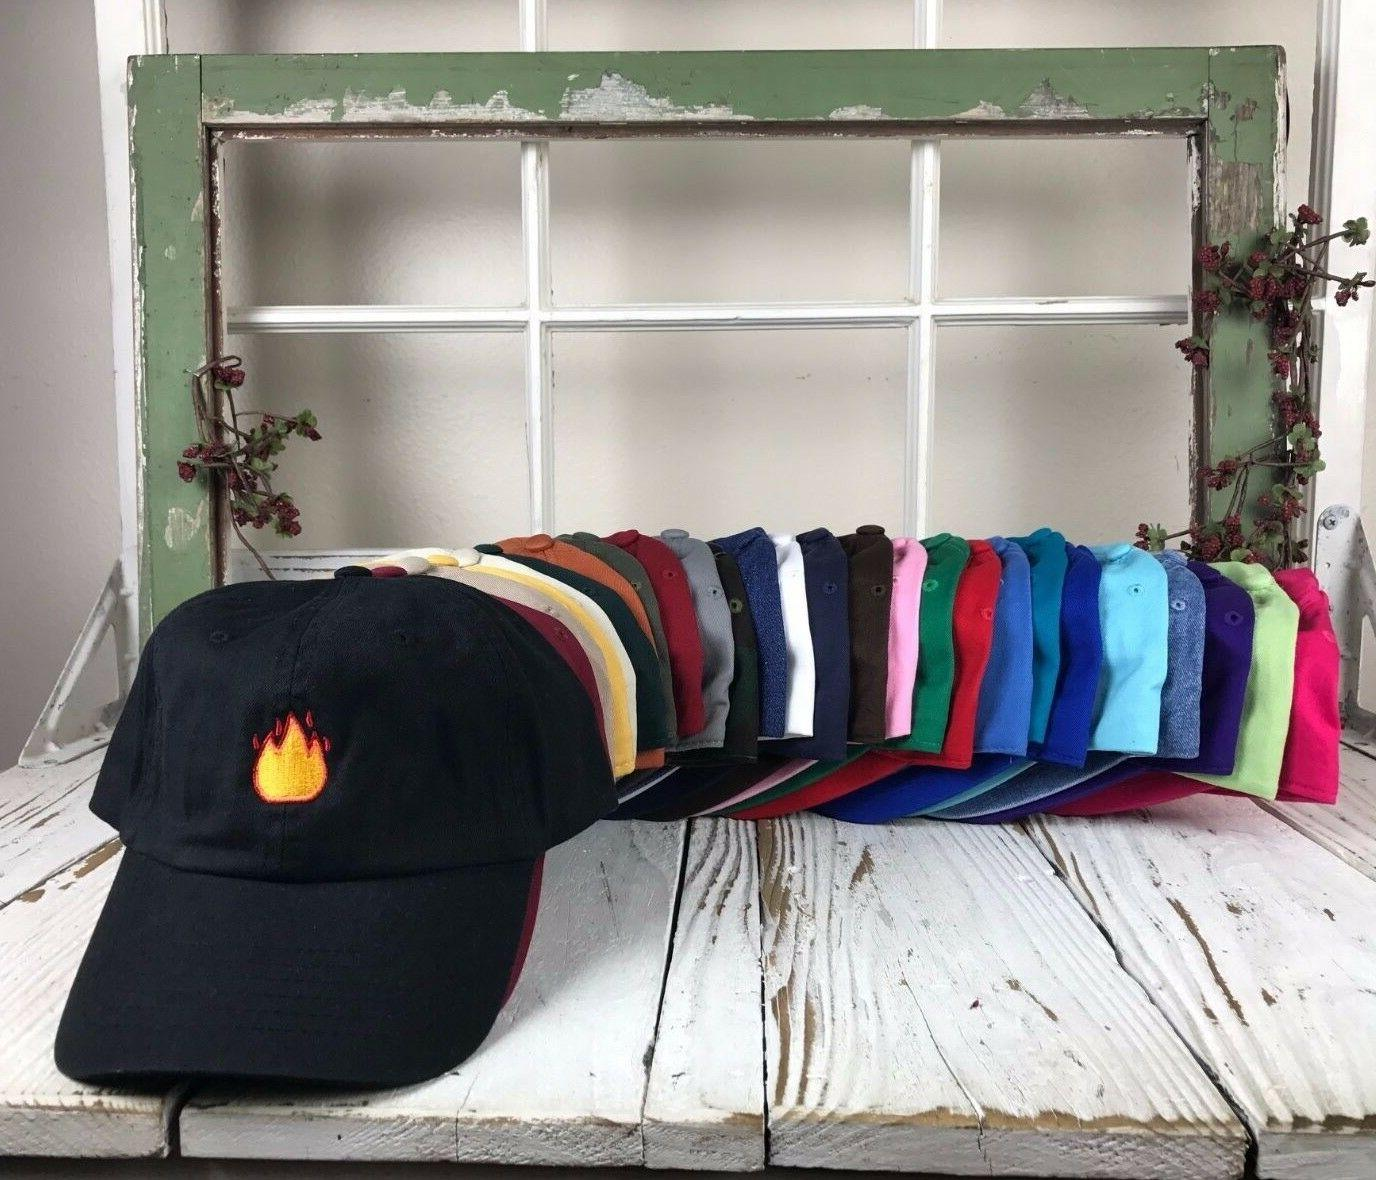 lit fire emoji embroidered baseball cap dad